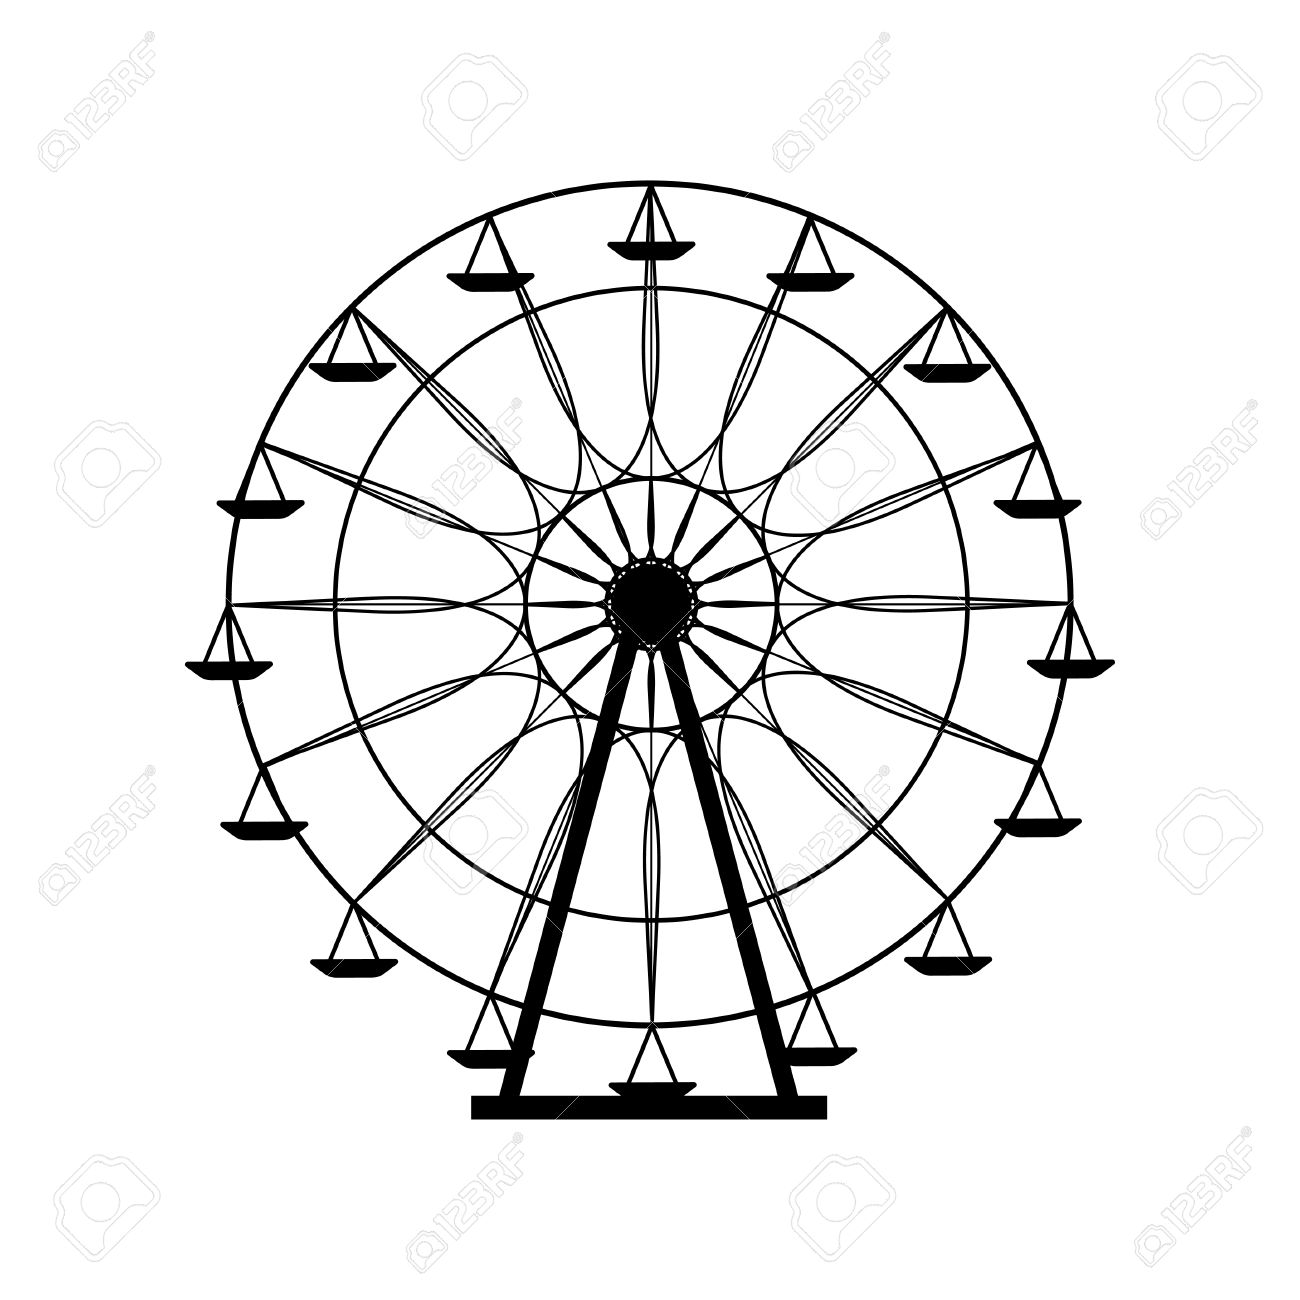 Ferris Wheel Silhouette Circle Carnival Funfair Background Carousel Royalty Free Cliparts Vectors And Stock Illustration Image 57893523